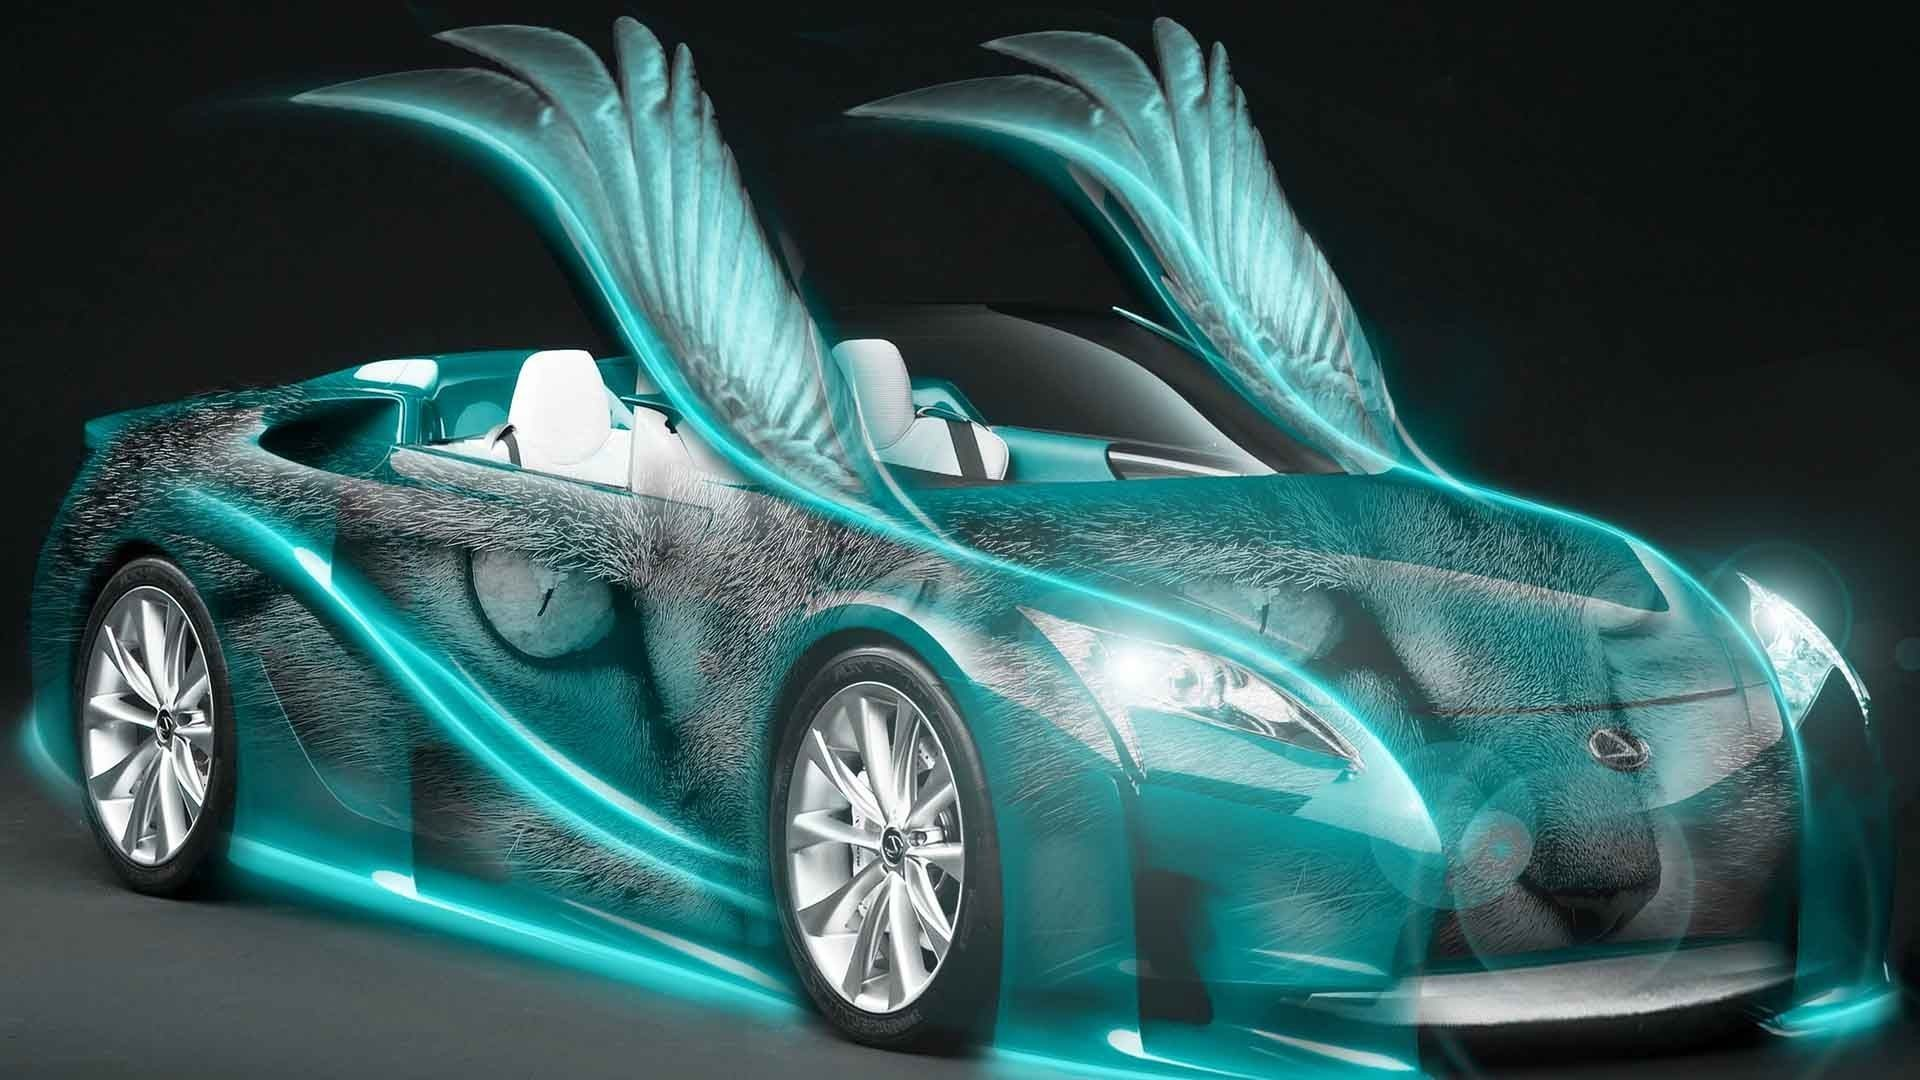 The Coolest Wallpaper Ever Images - What is the coolest car in the world